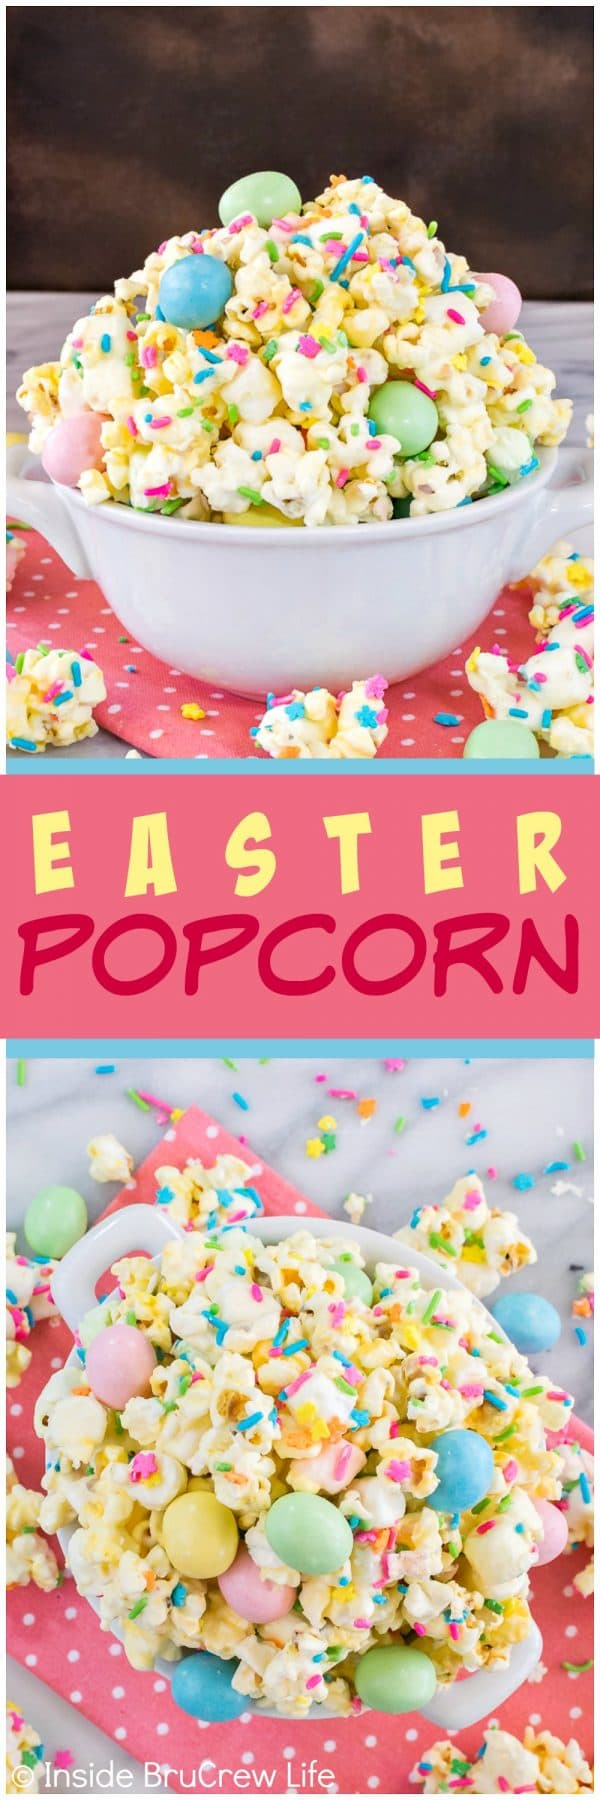 Easter Popcorn - this easy white chocolate covered popcorn is loaded with colorful sprinkles and candy. Great no bake snack mix recipe that is great for sharing at parties or filling Easter baskets. #easter #popcorn #snackmix #chocolatecoveredpopcorn #bunnybait #eastercandy